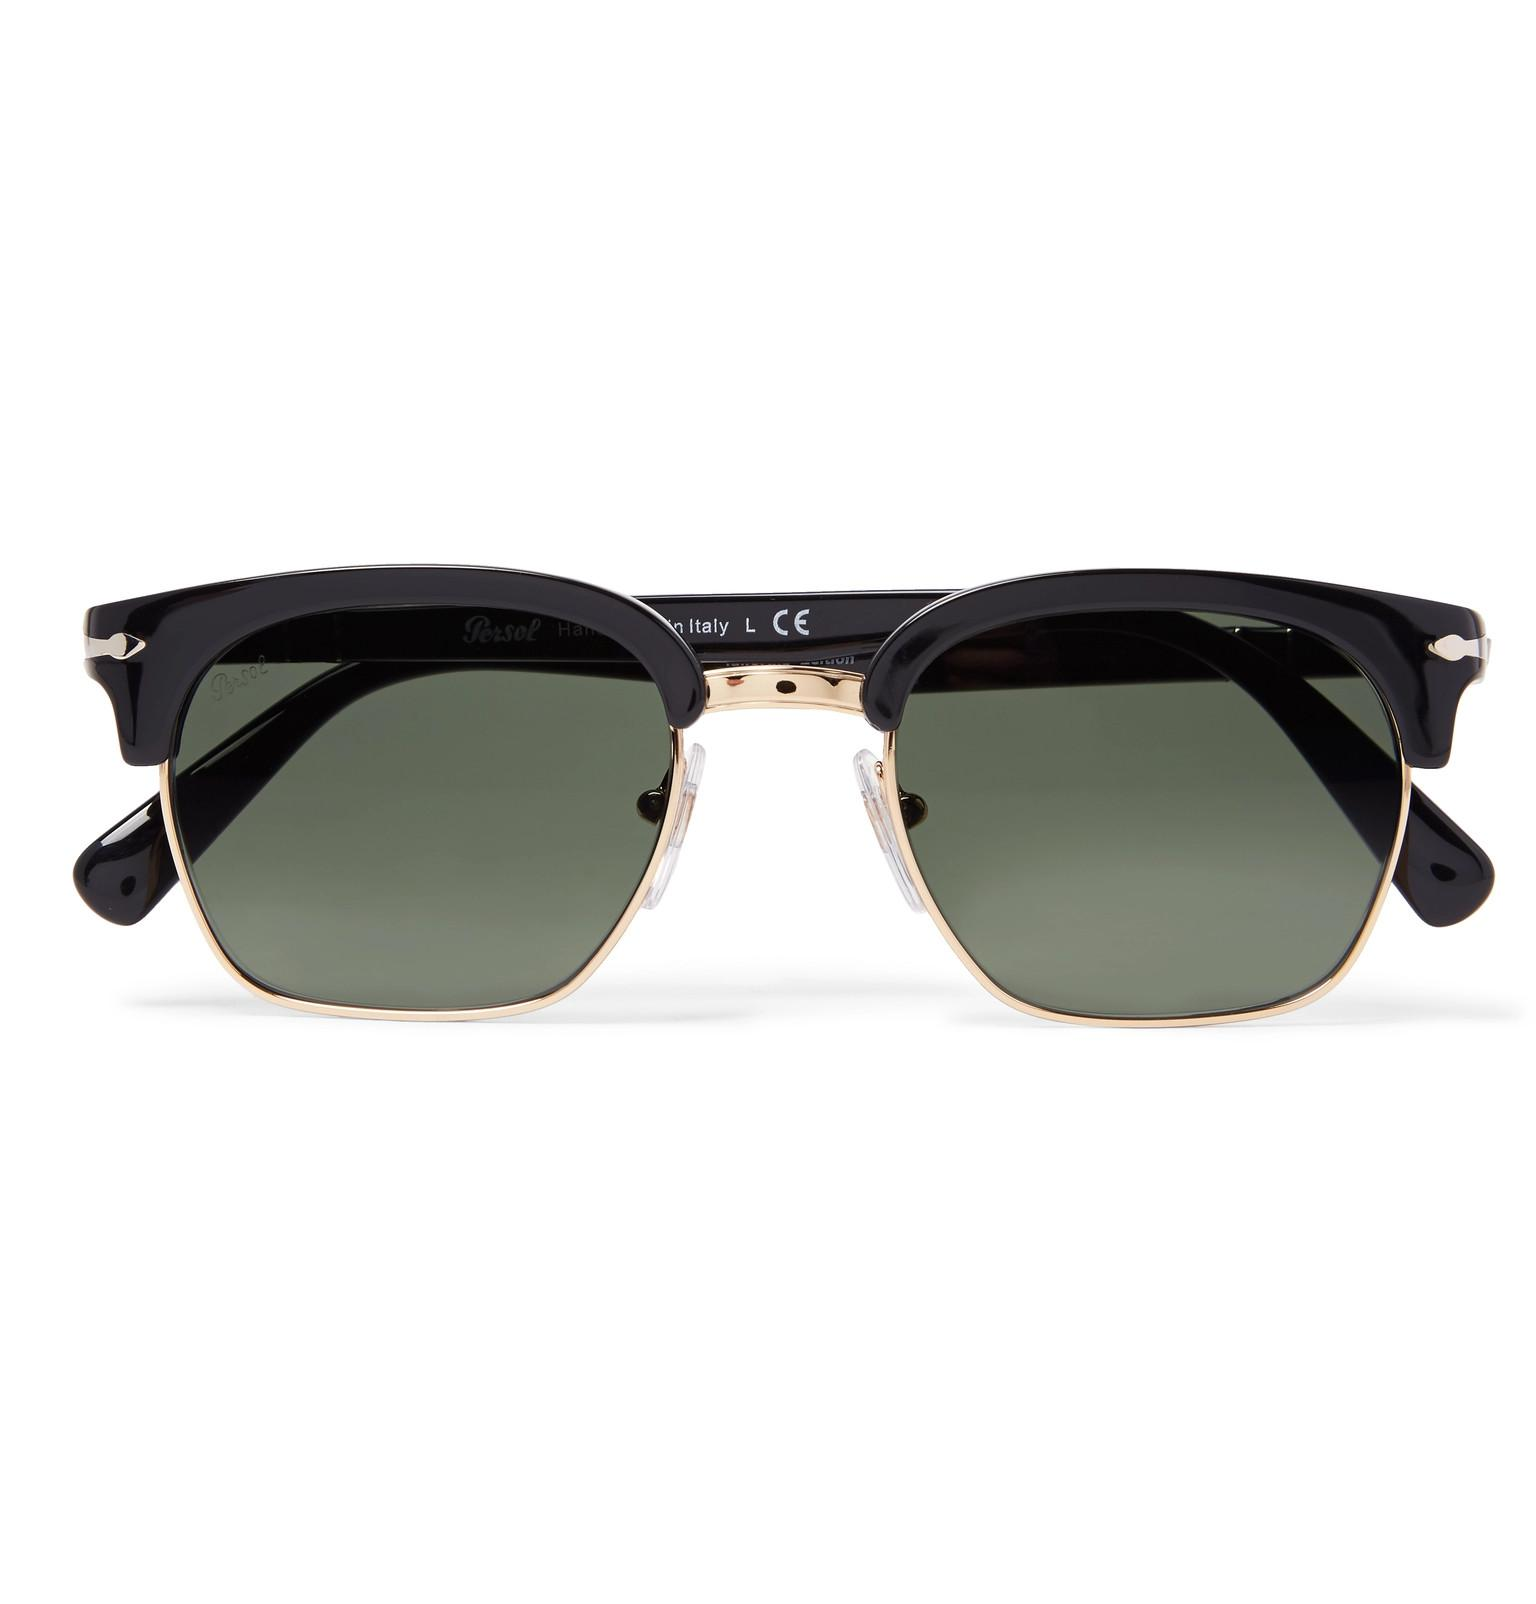 bf47b91827 Persol D-frame Gold-tone And Acetate Sunglasses in Black for Men - Lyst